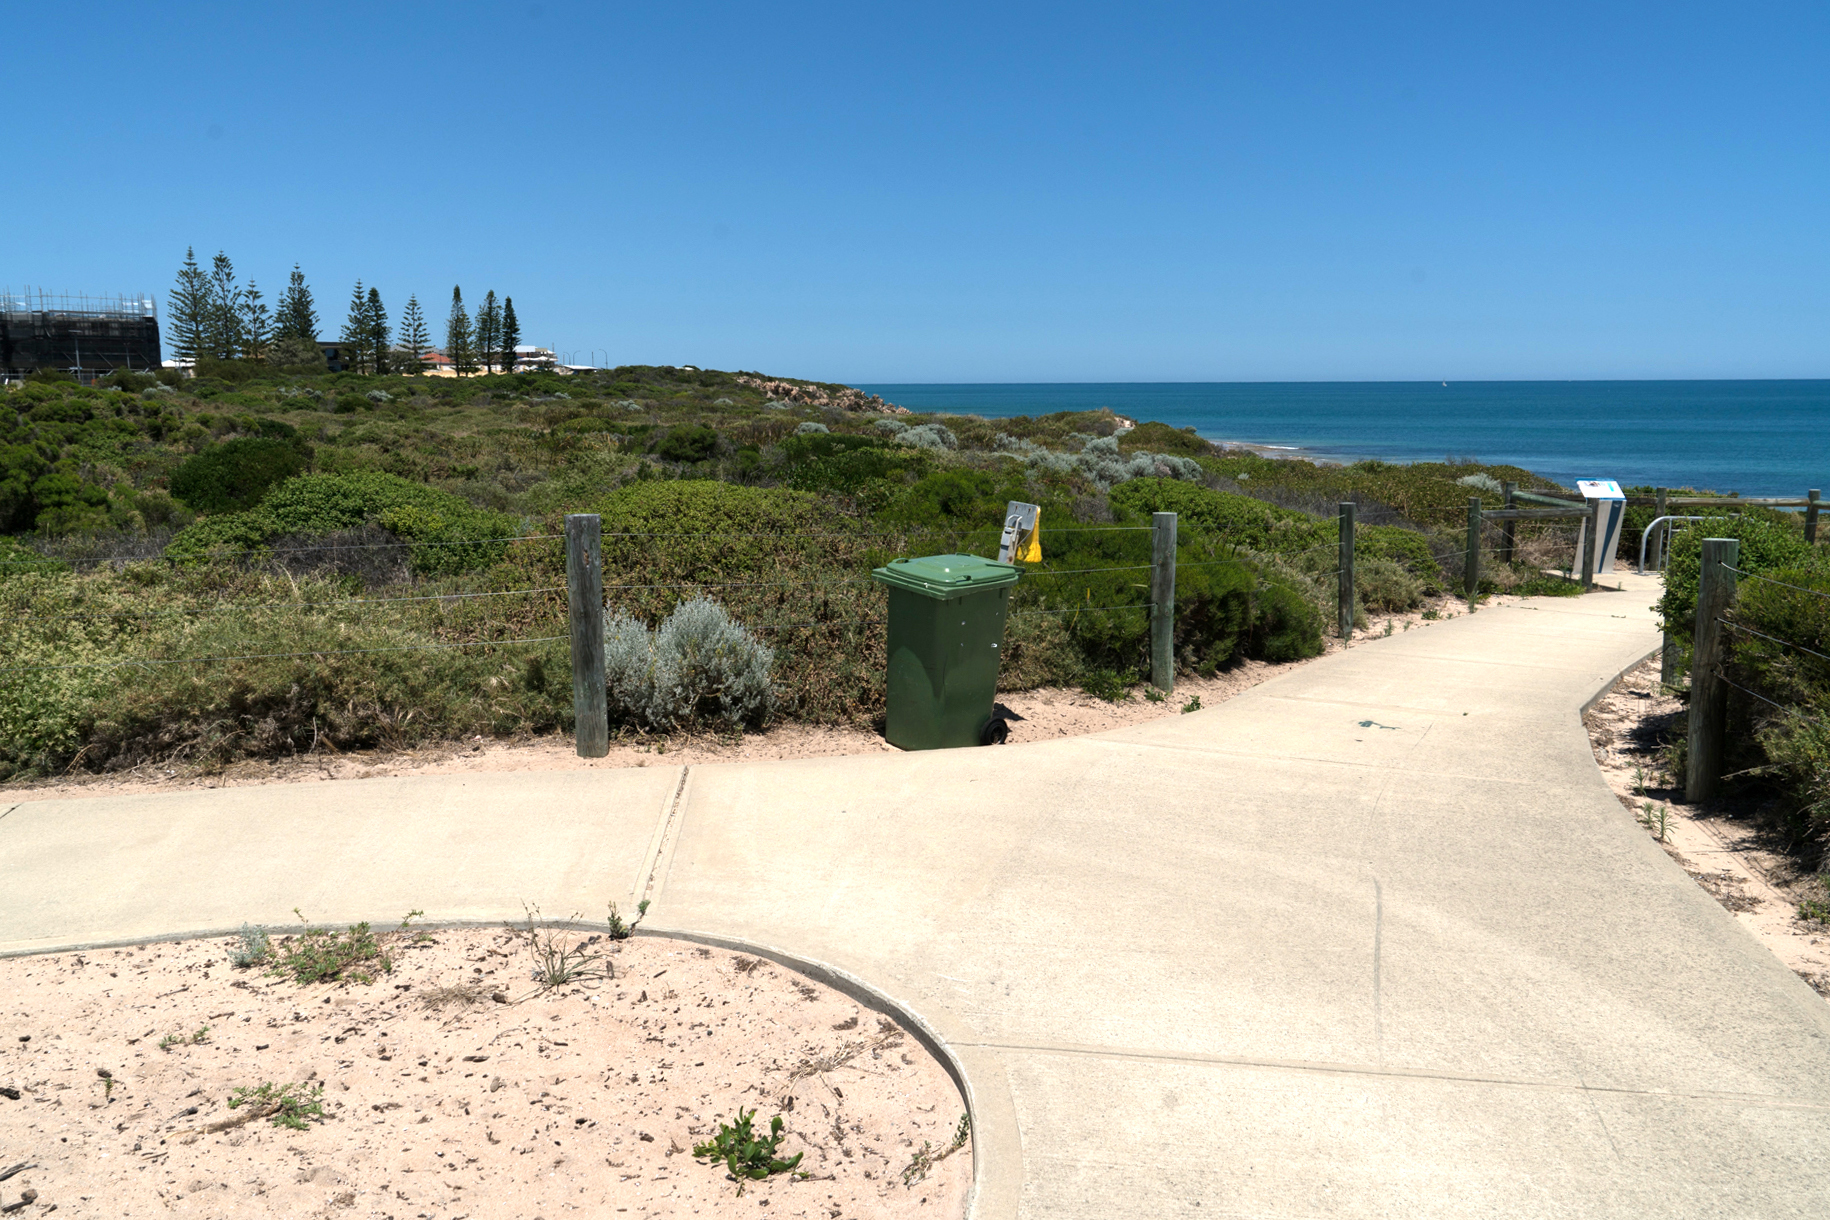 Plate 11: End of Seascapes Interpretive Walkway – the turn around point